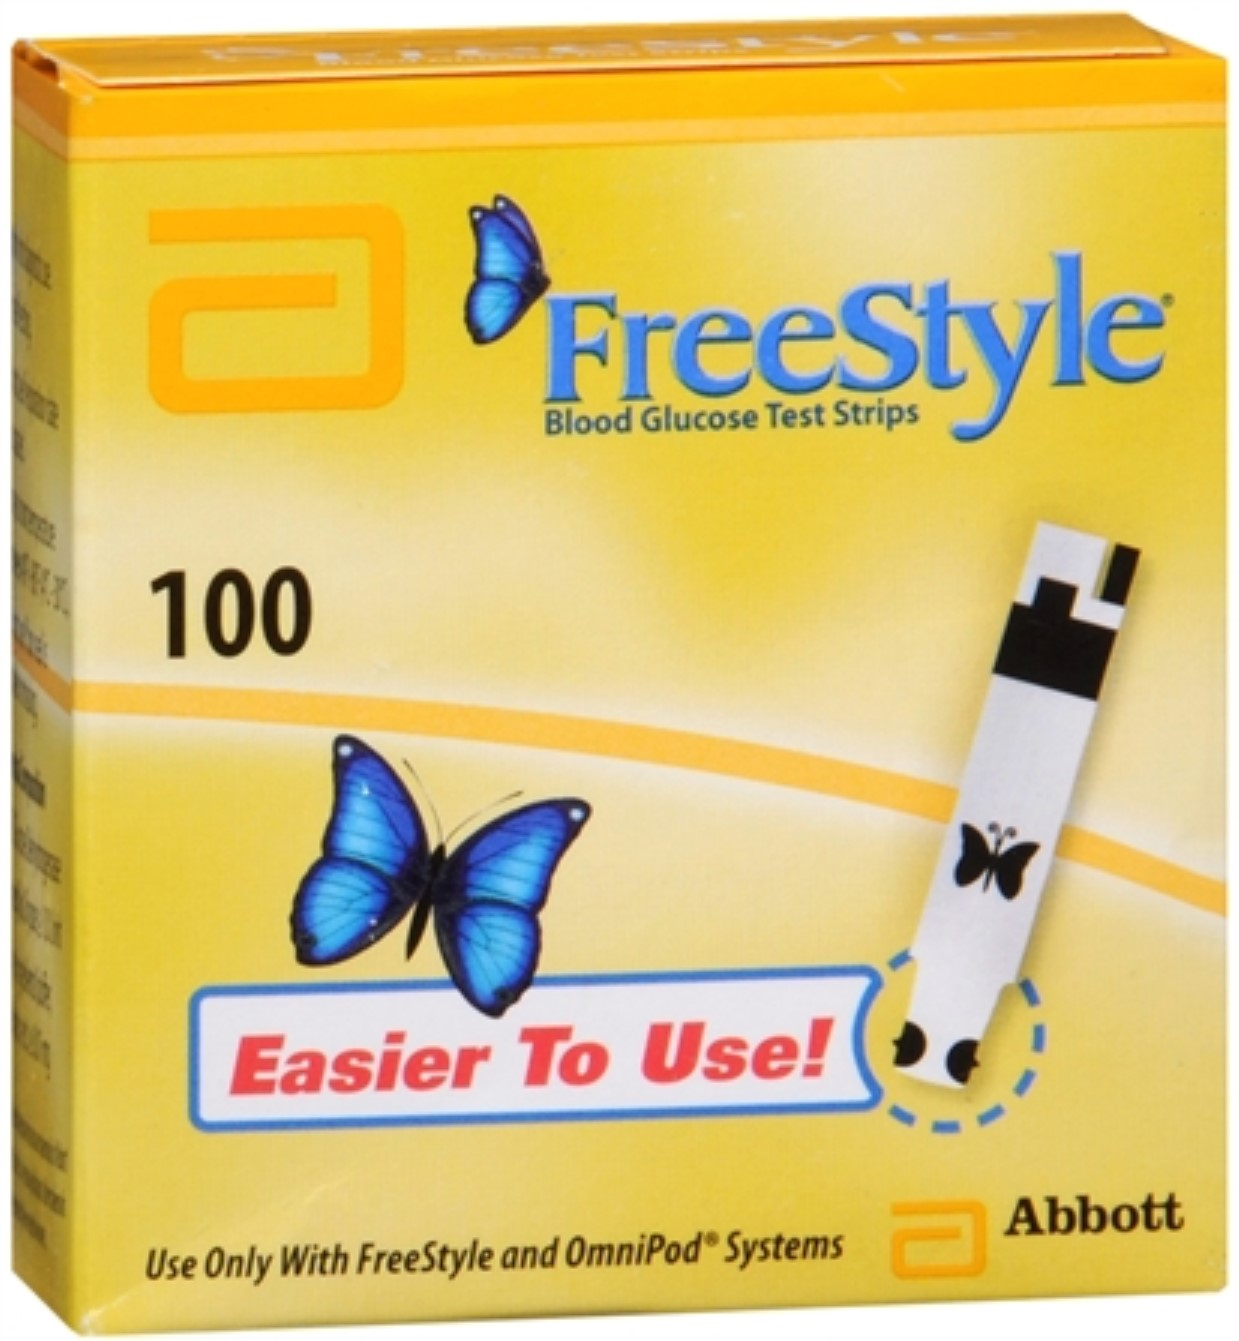 FreeStyle Blood Glucose Test Strips 100 Each (Pack of 4)